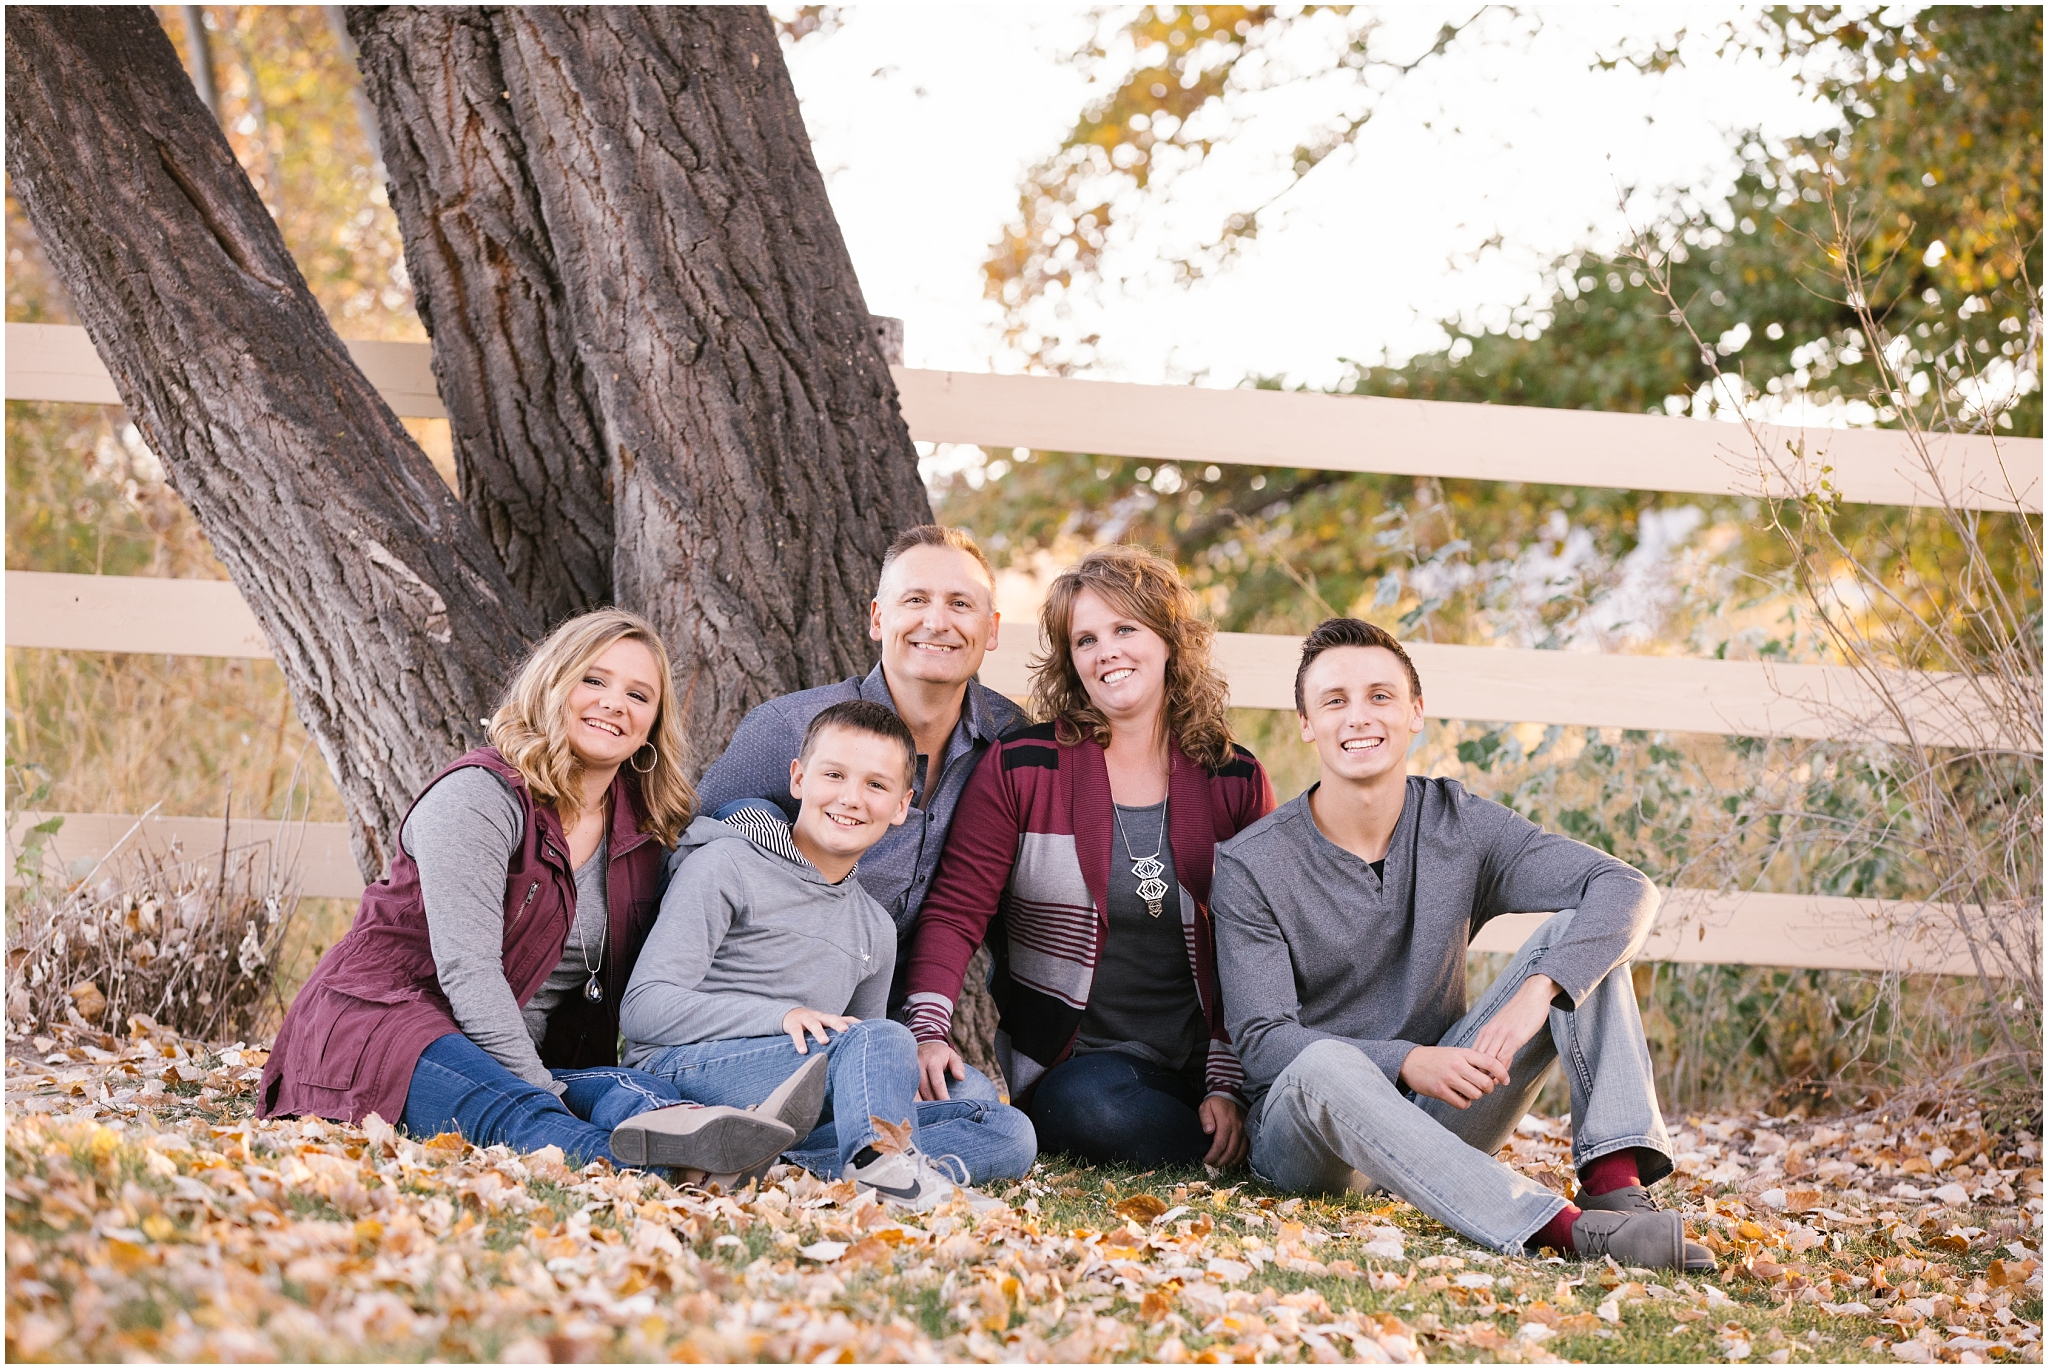 Fielding-33_Lizzie-B-Imagery-Utah-Family-Photographer-Central-Utah-Park-City-Salt-Lake-City.jpg